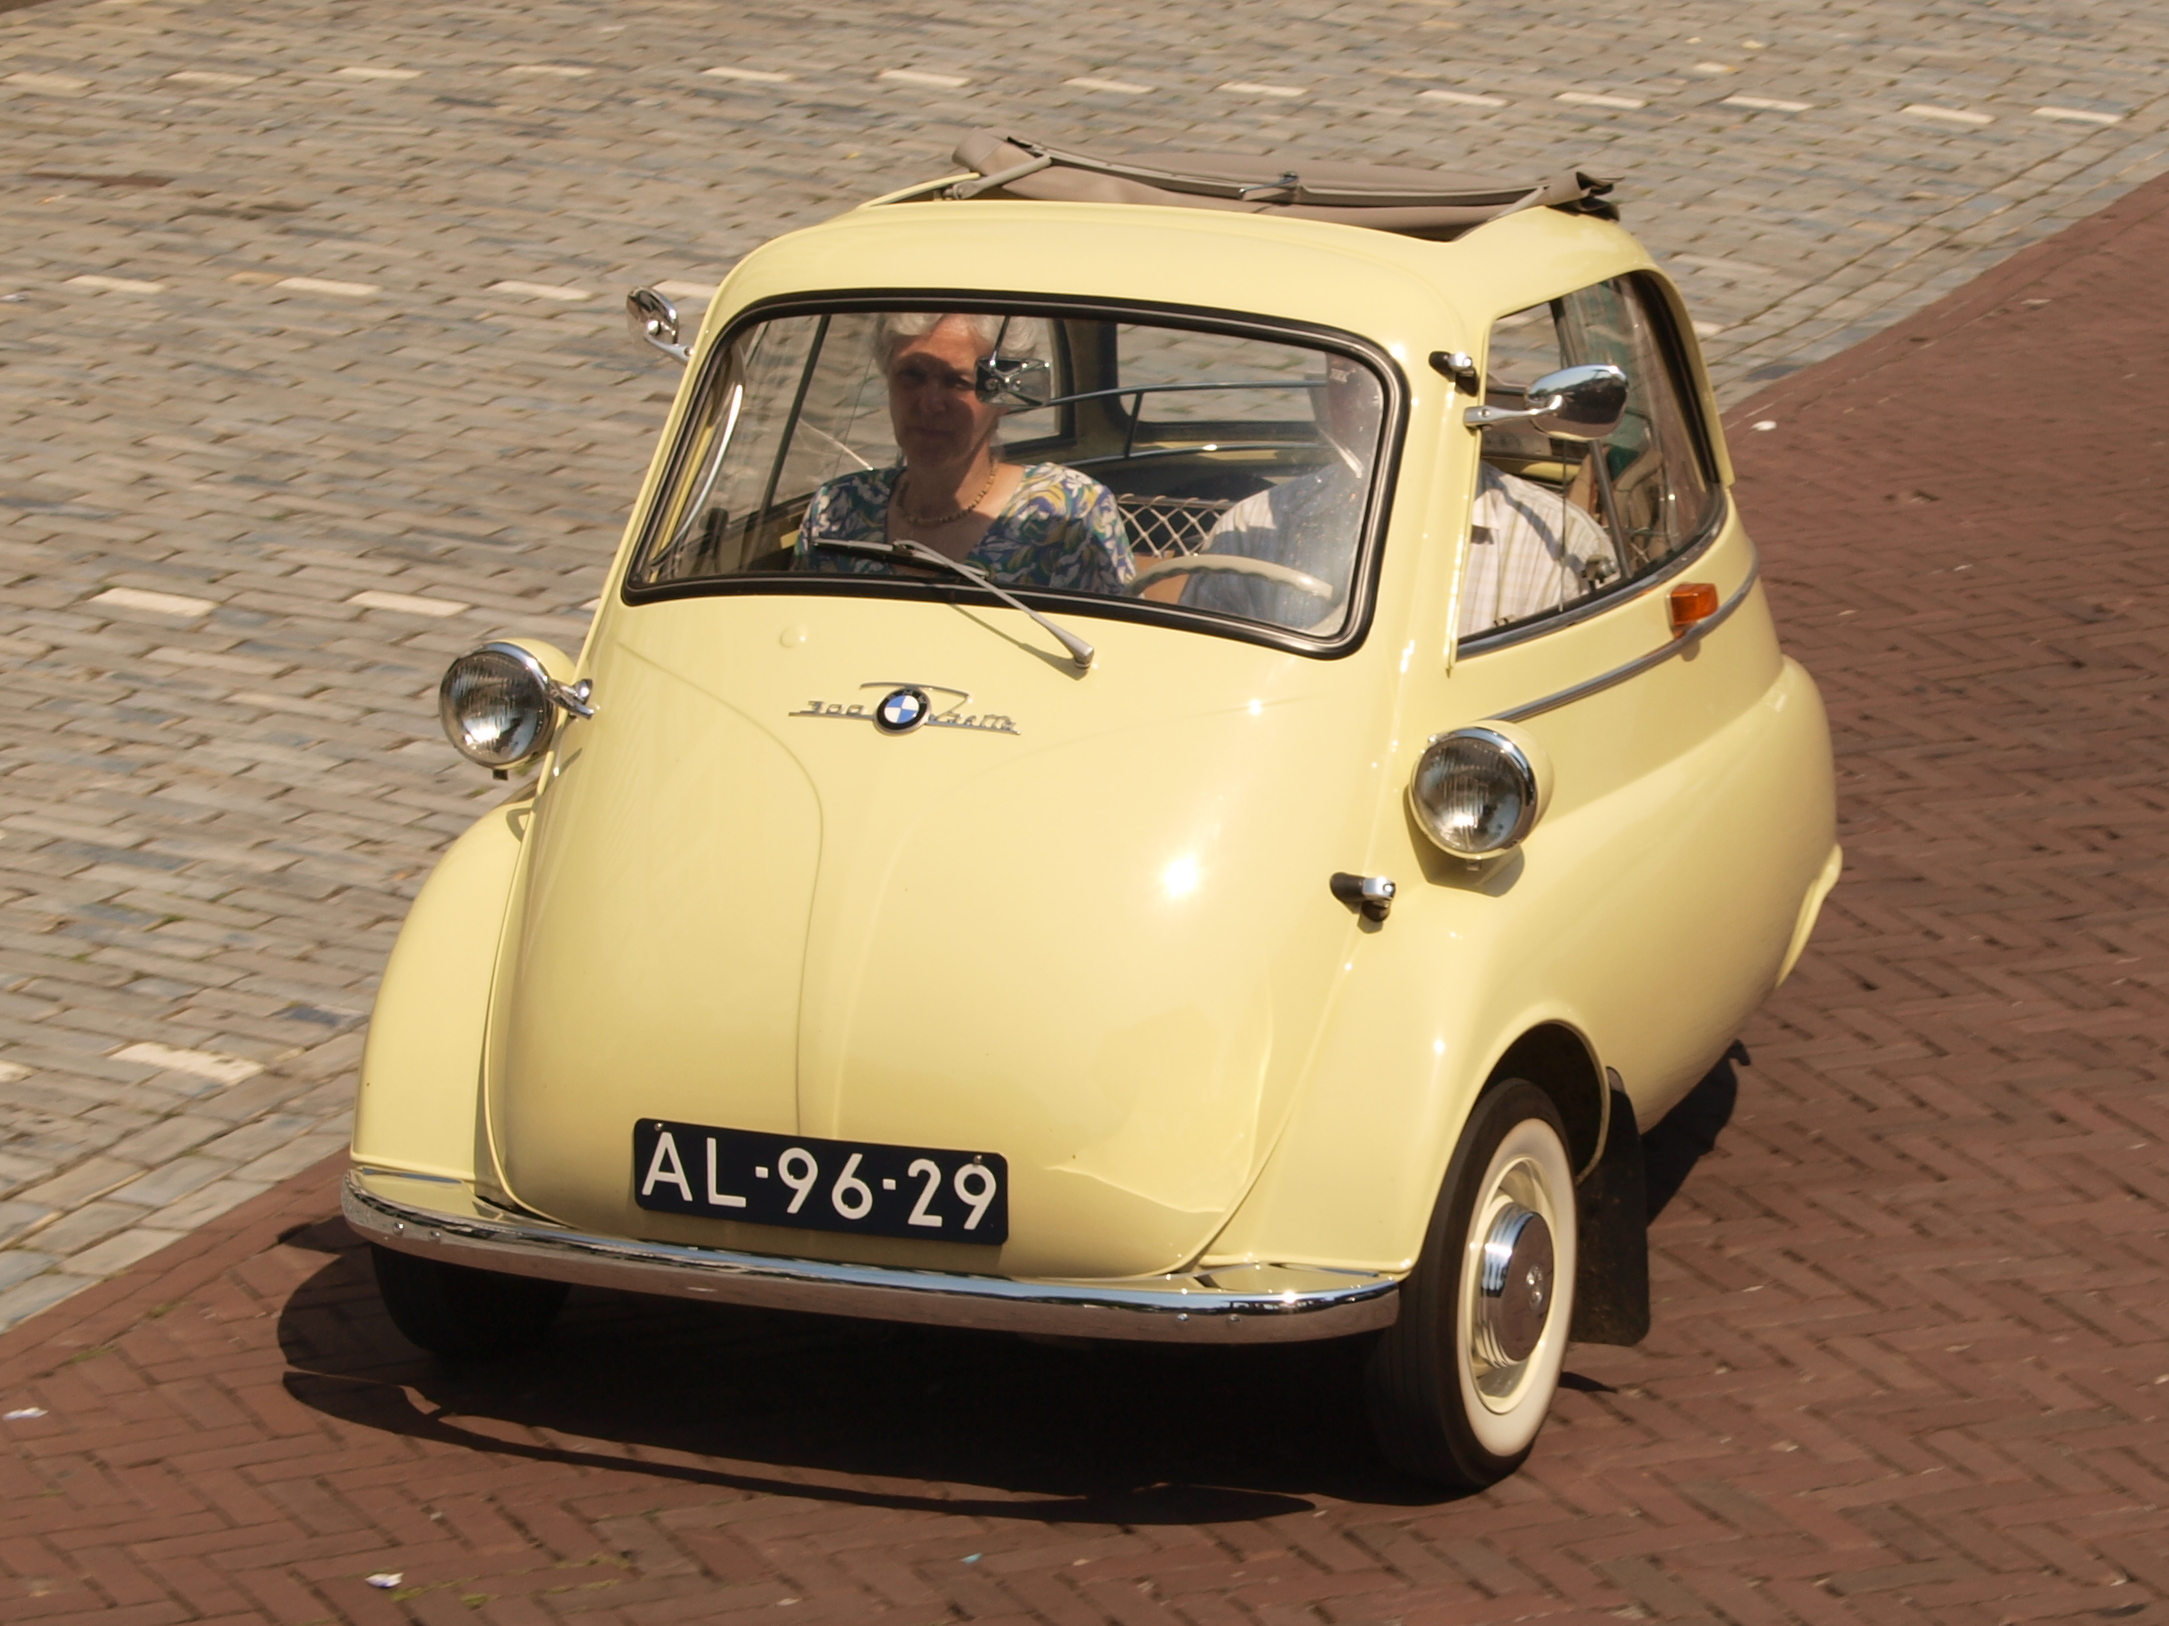 File 1959 Bmw Isetta 300 Al 96 29 P2 Jpg Wikimedia Commons